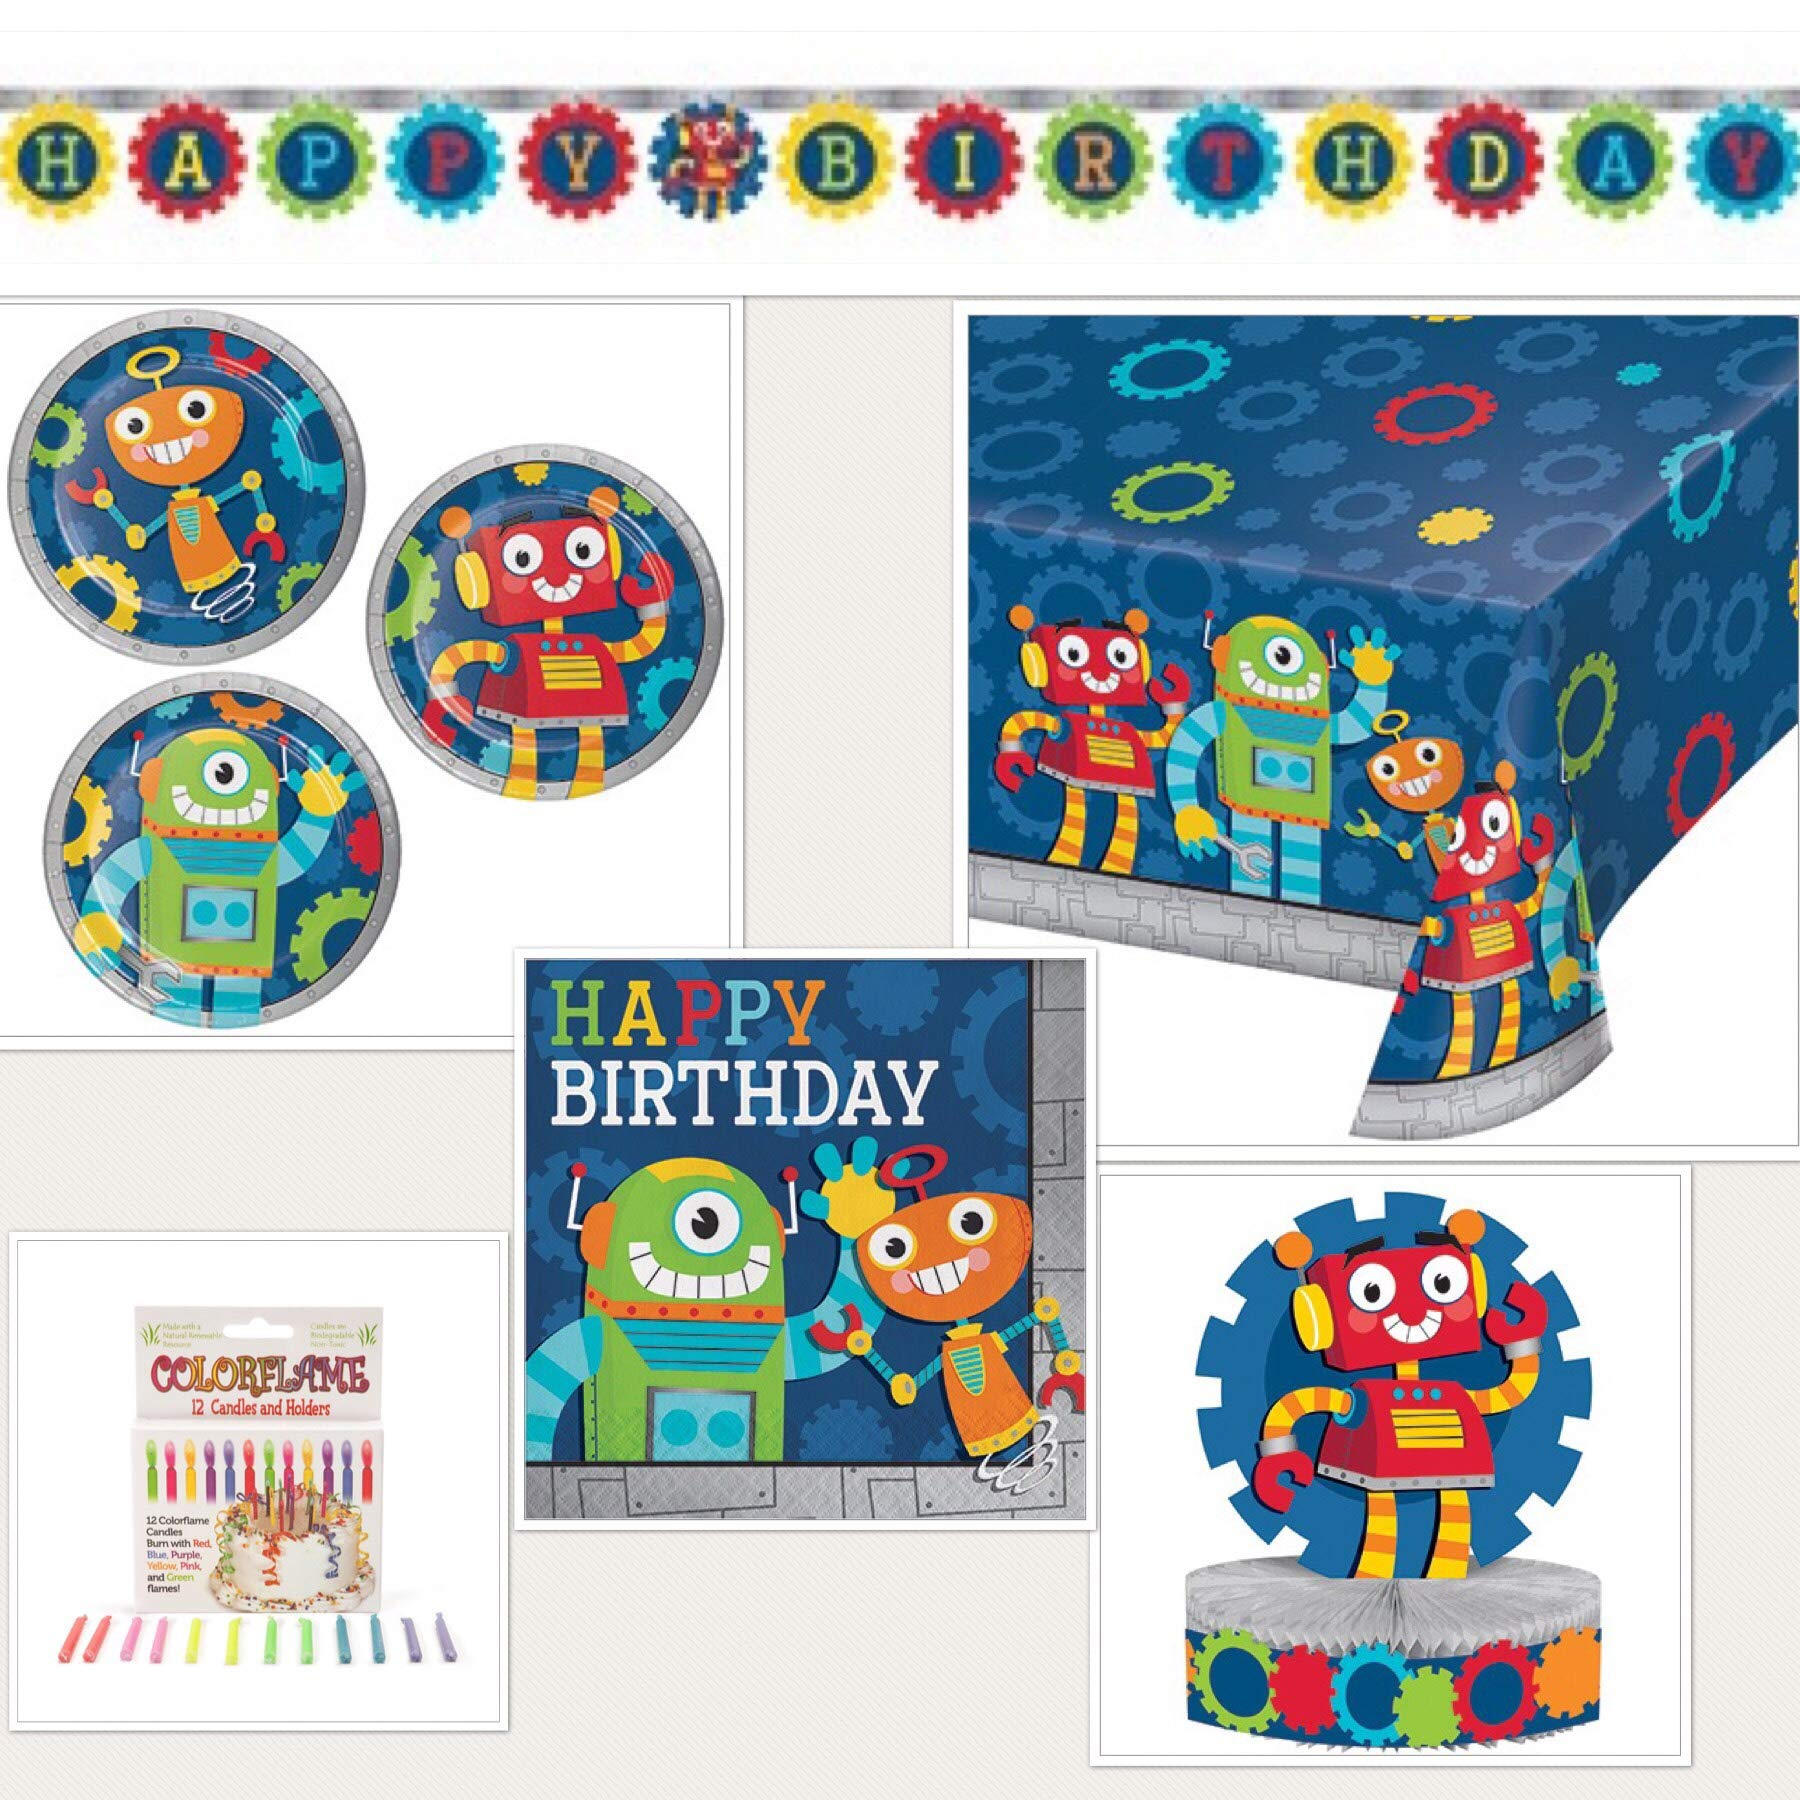 Olive Occasions Robot Happy Birthday Party Supplies 16 Beverage Napkins, 16 Cake Plates, Banner, Centerpiece, Tablecloth, 12 ColorFlame Candles and Grandma Olive's Multi-Generational Recipe